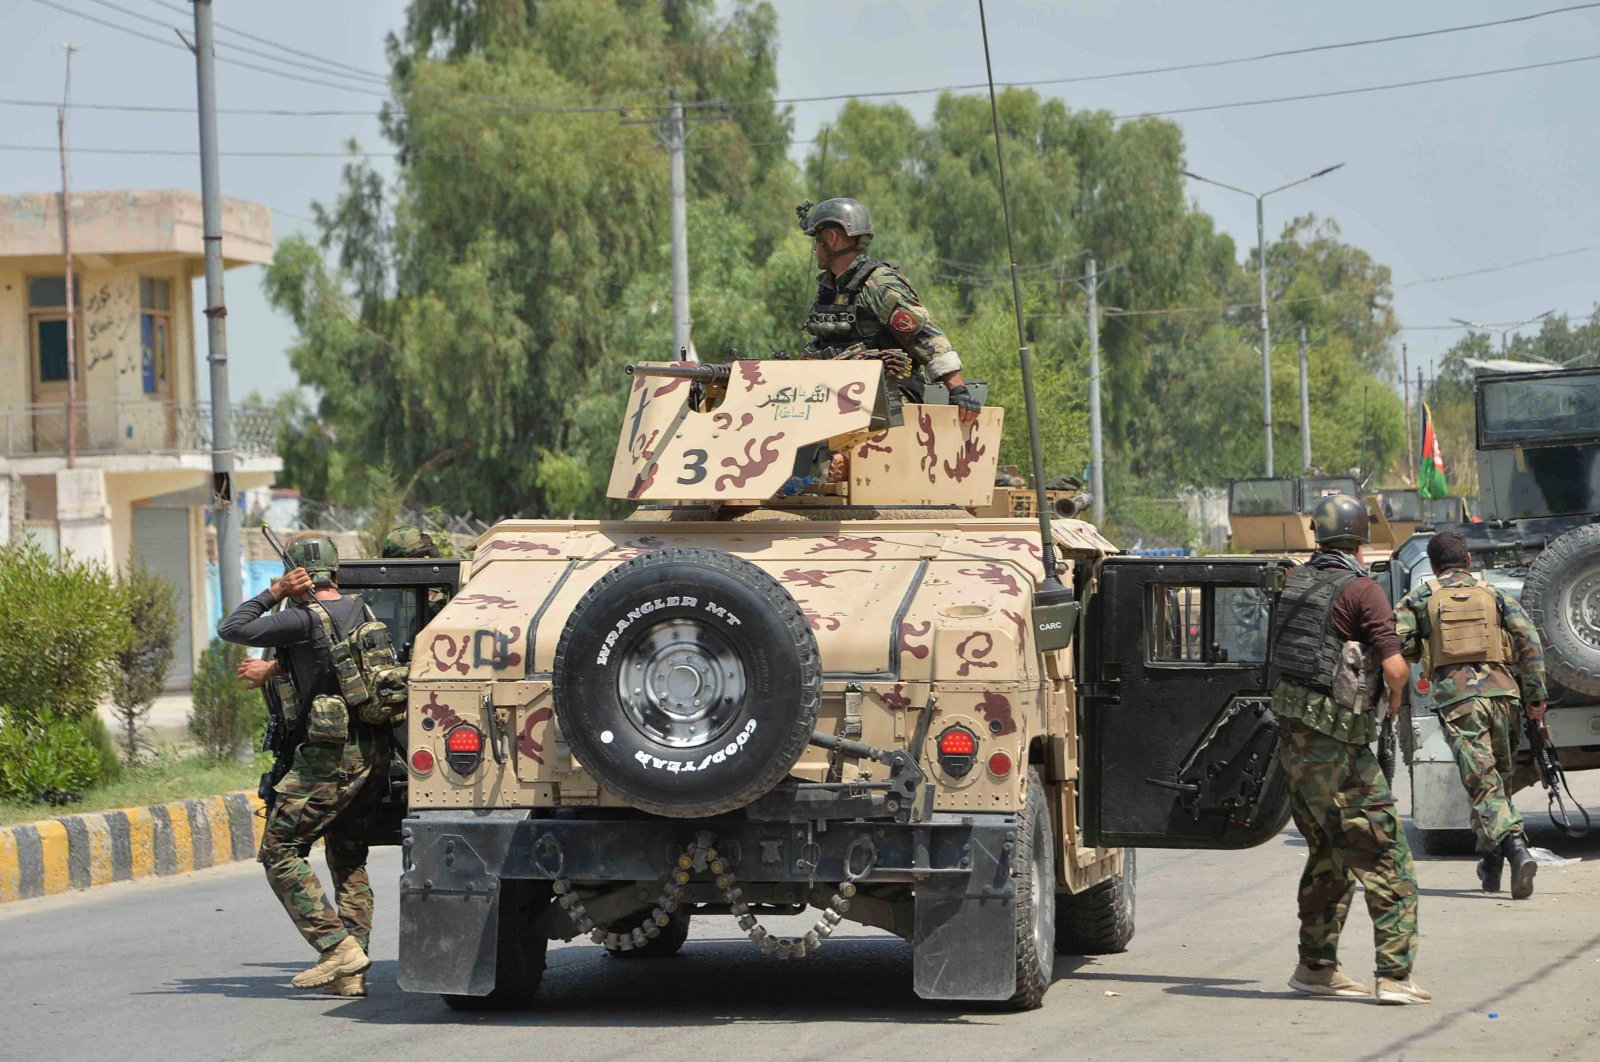 Afghan soldiers arrive in a Humvee vehicle outside a prison during a raid in Jalalabad, Afghanistan, Aug. 3, 2020. (AFP Photo)